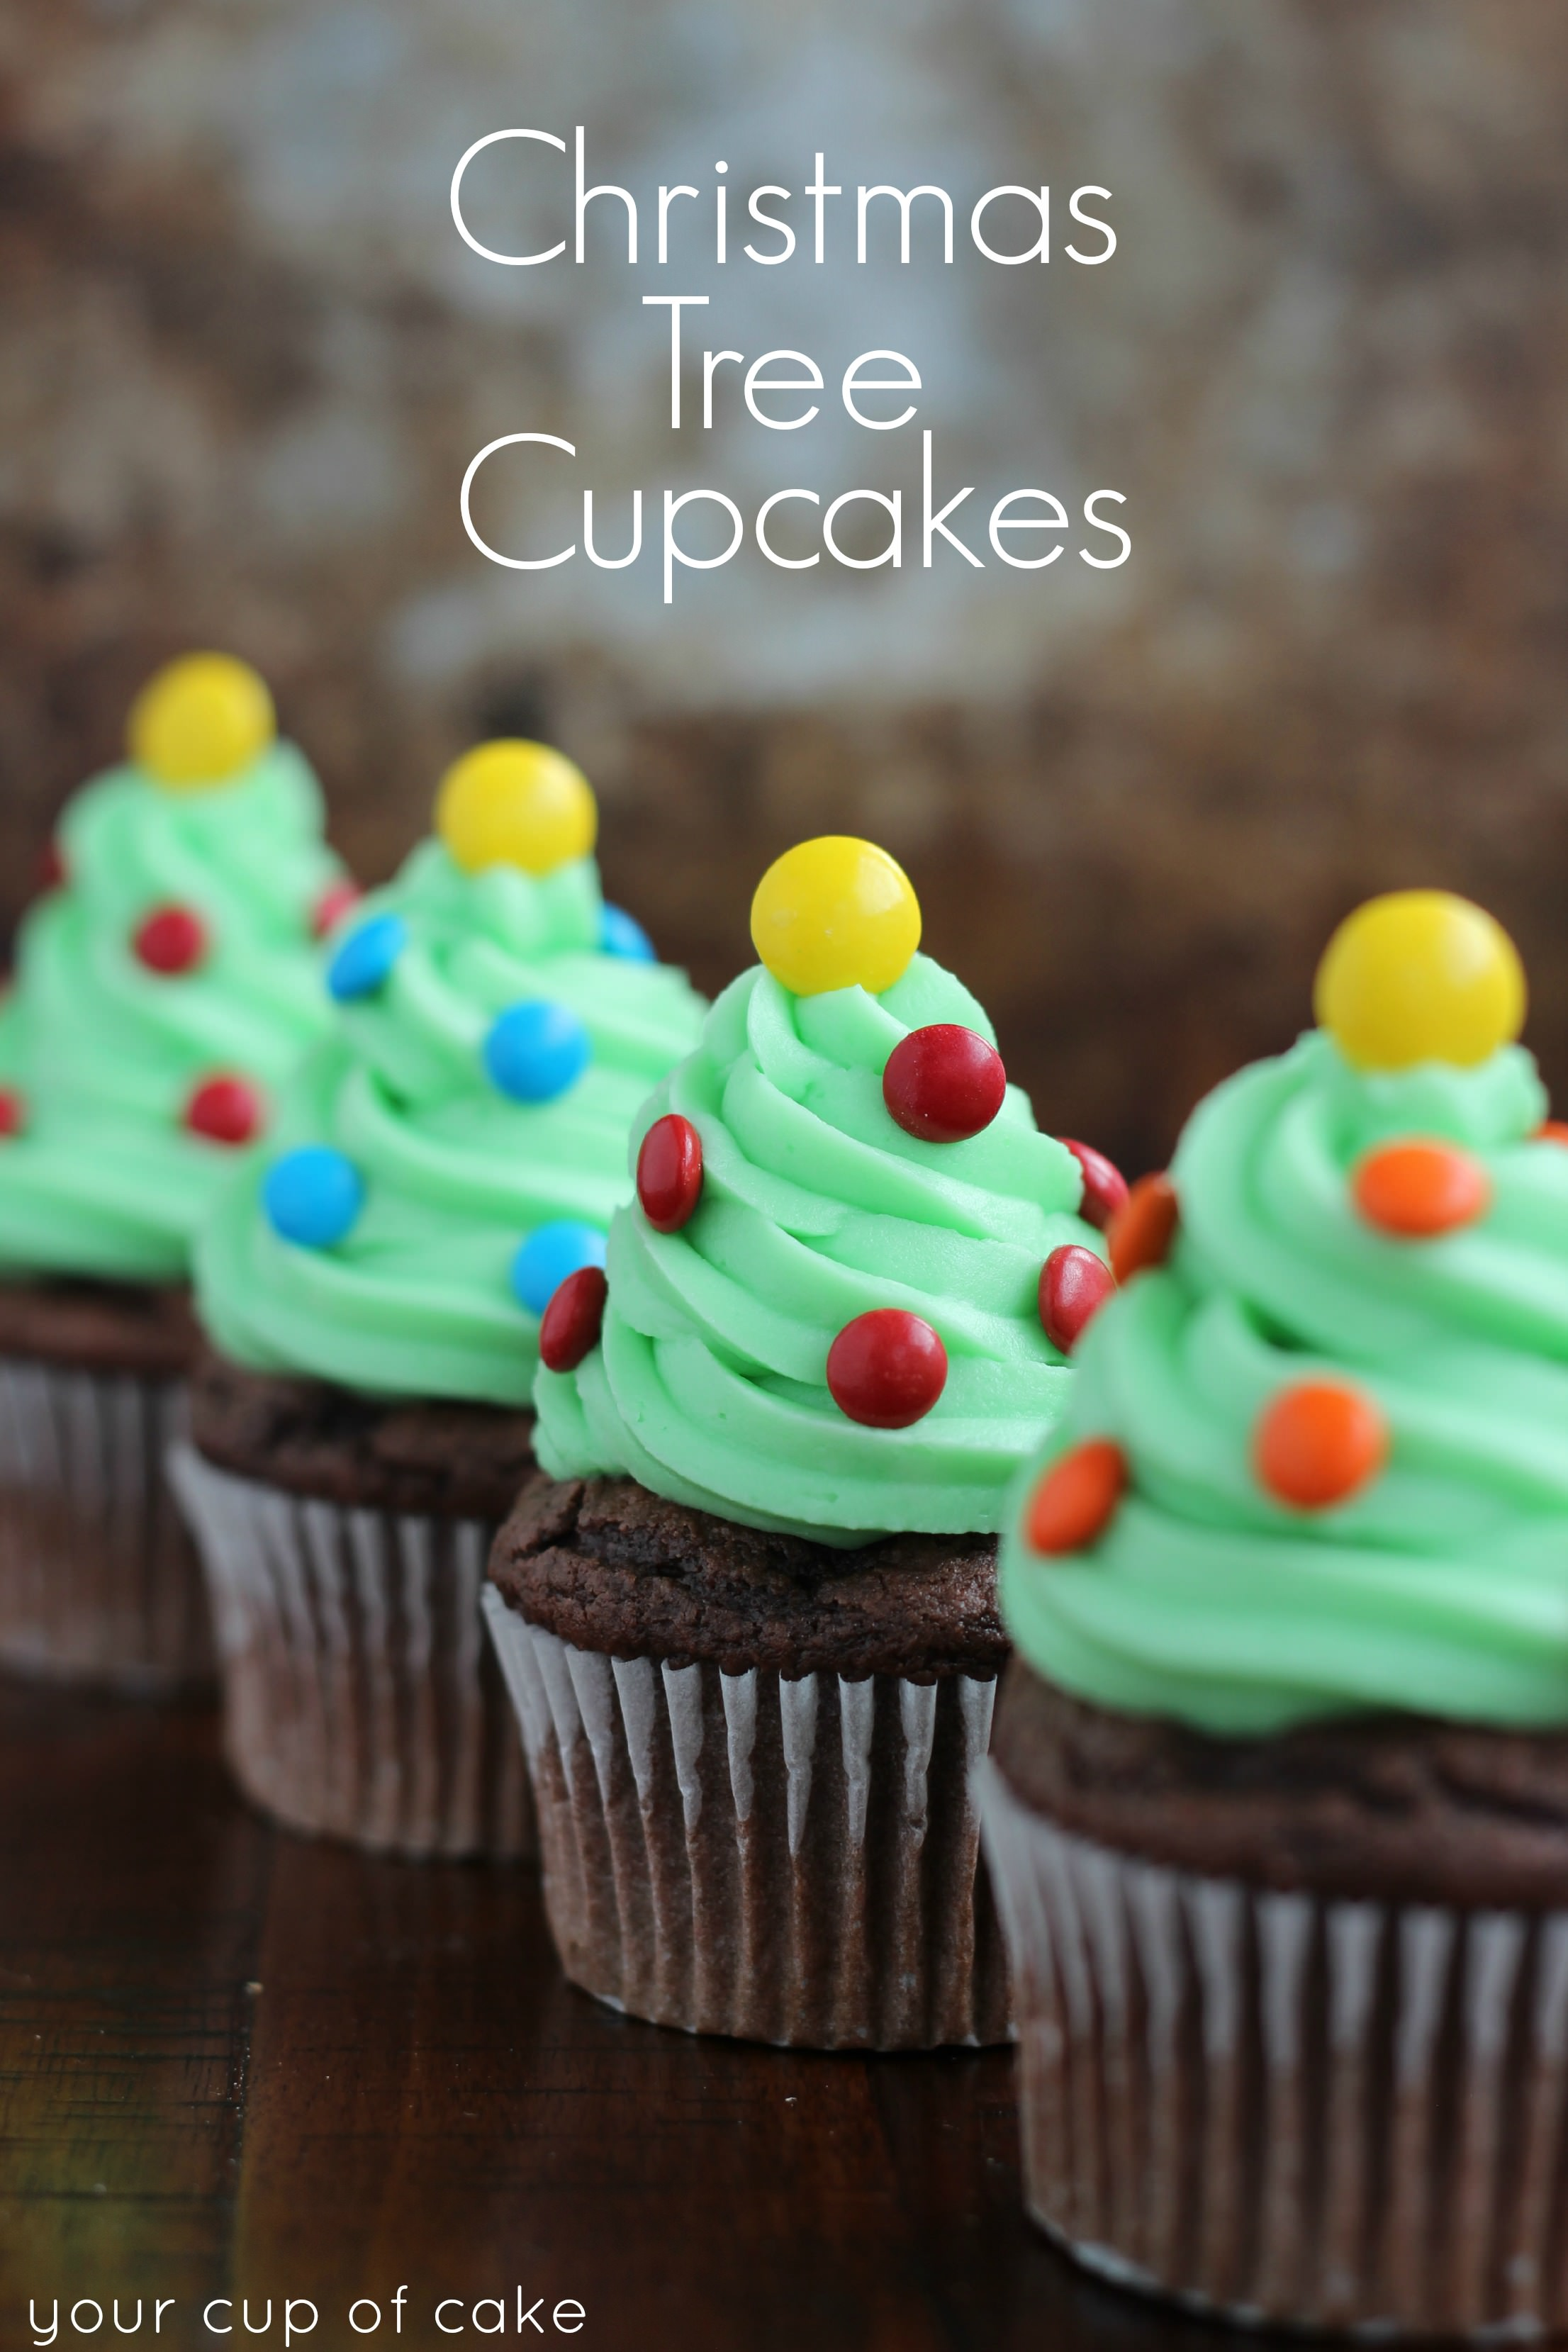 Easy Cupcake Decorating for Christmas  Your Cup of Cake